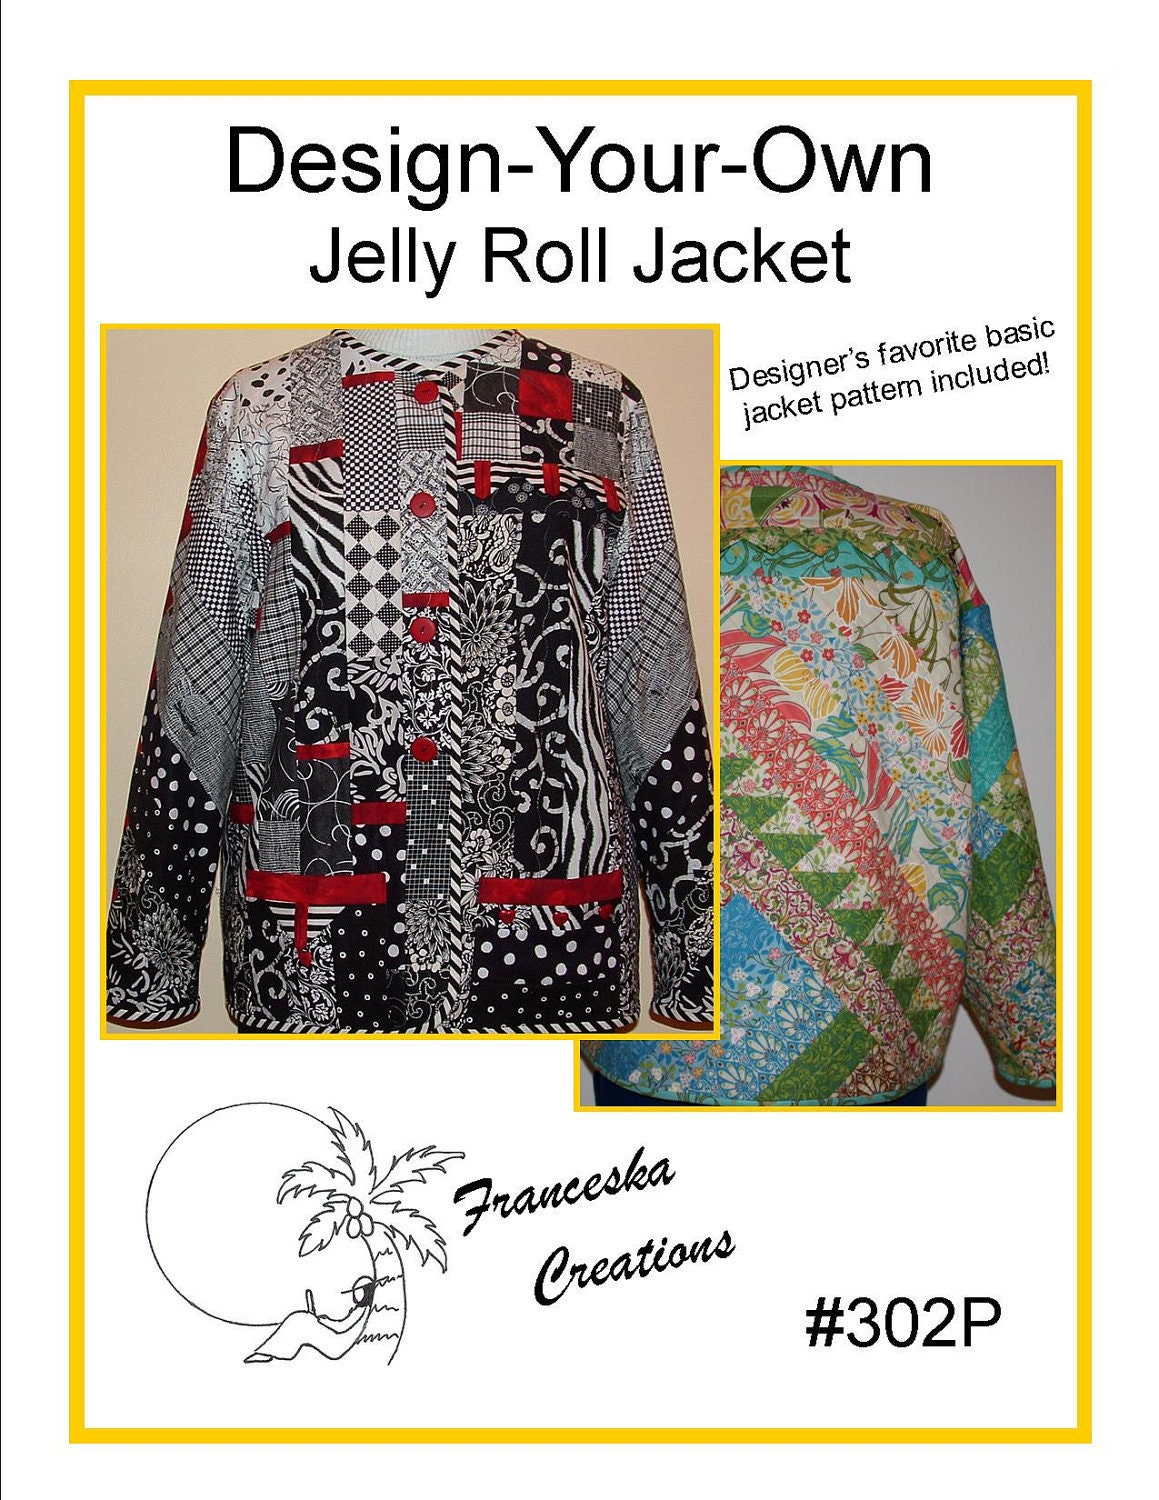 Design-Your-Own Jelly Roll Jacket Pattern